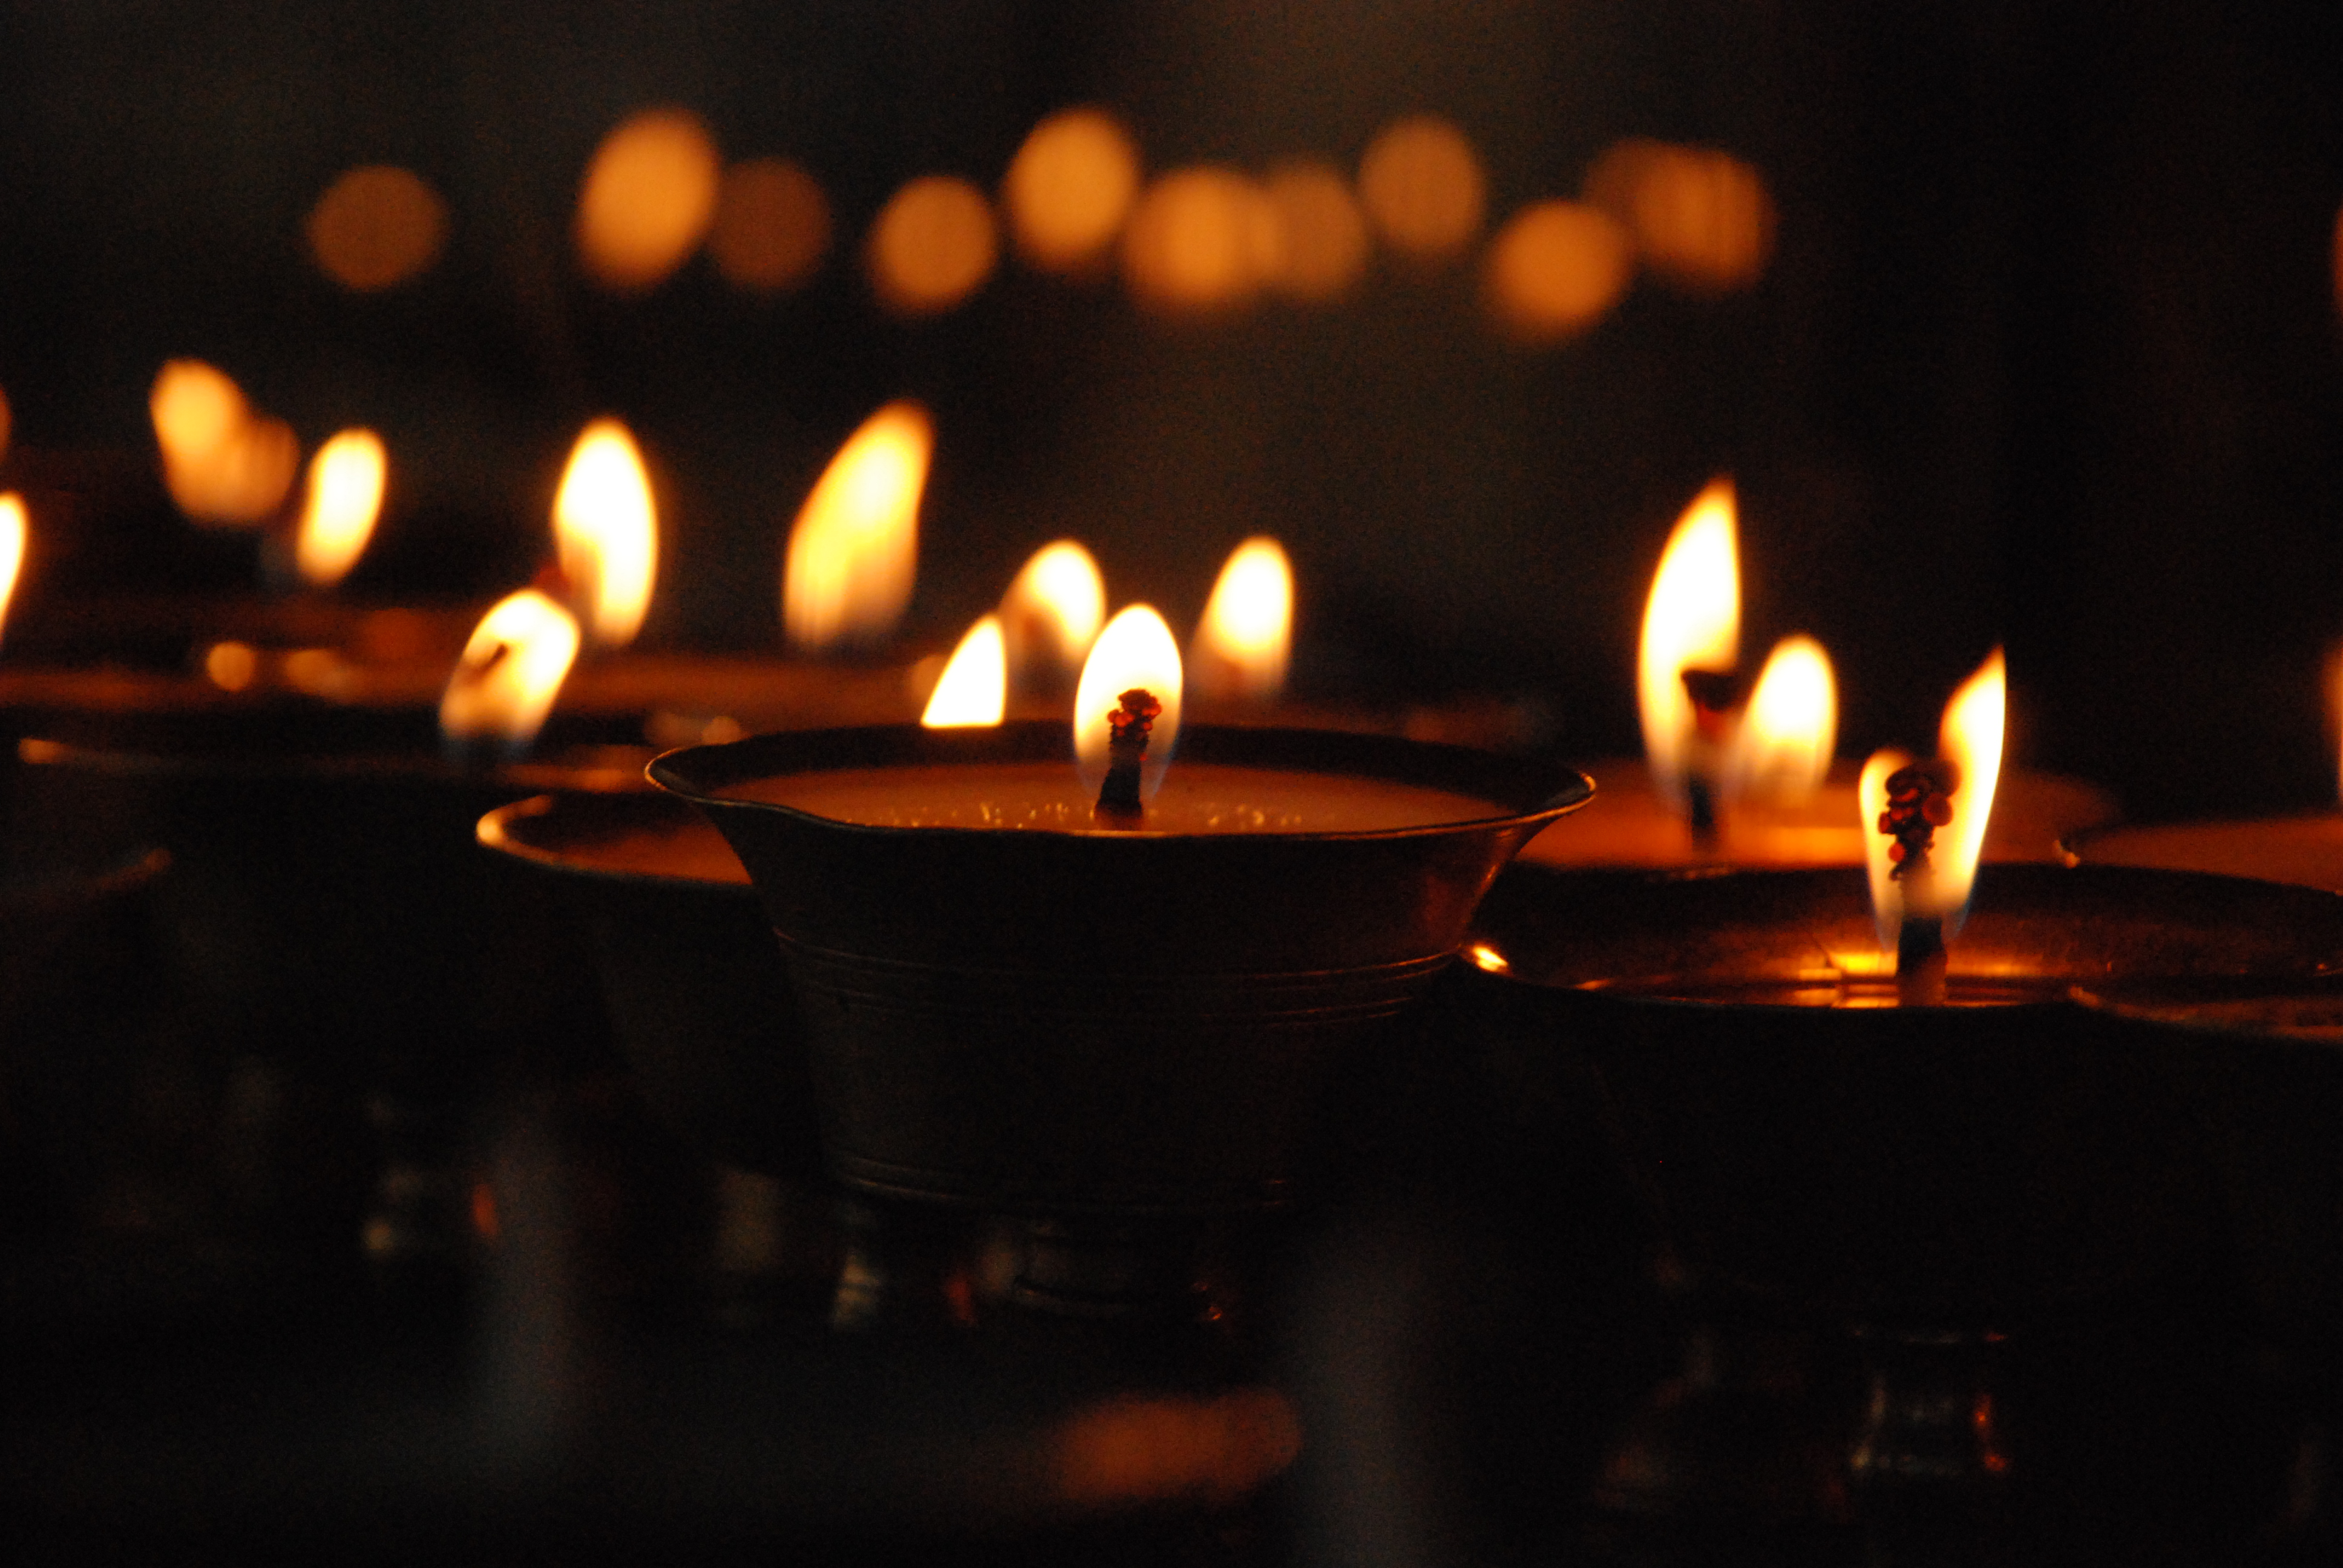 3d Candle Live Wallpaper Diya Light 4131 Picture By Achiver In Album 307 My